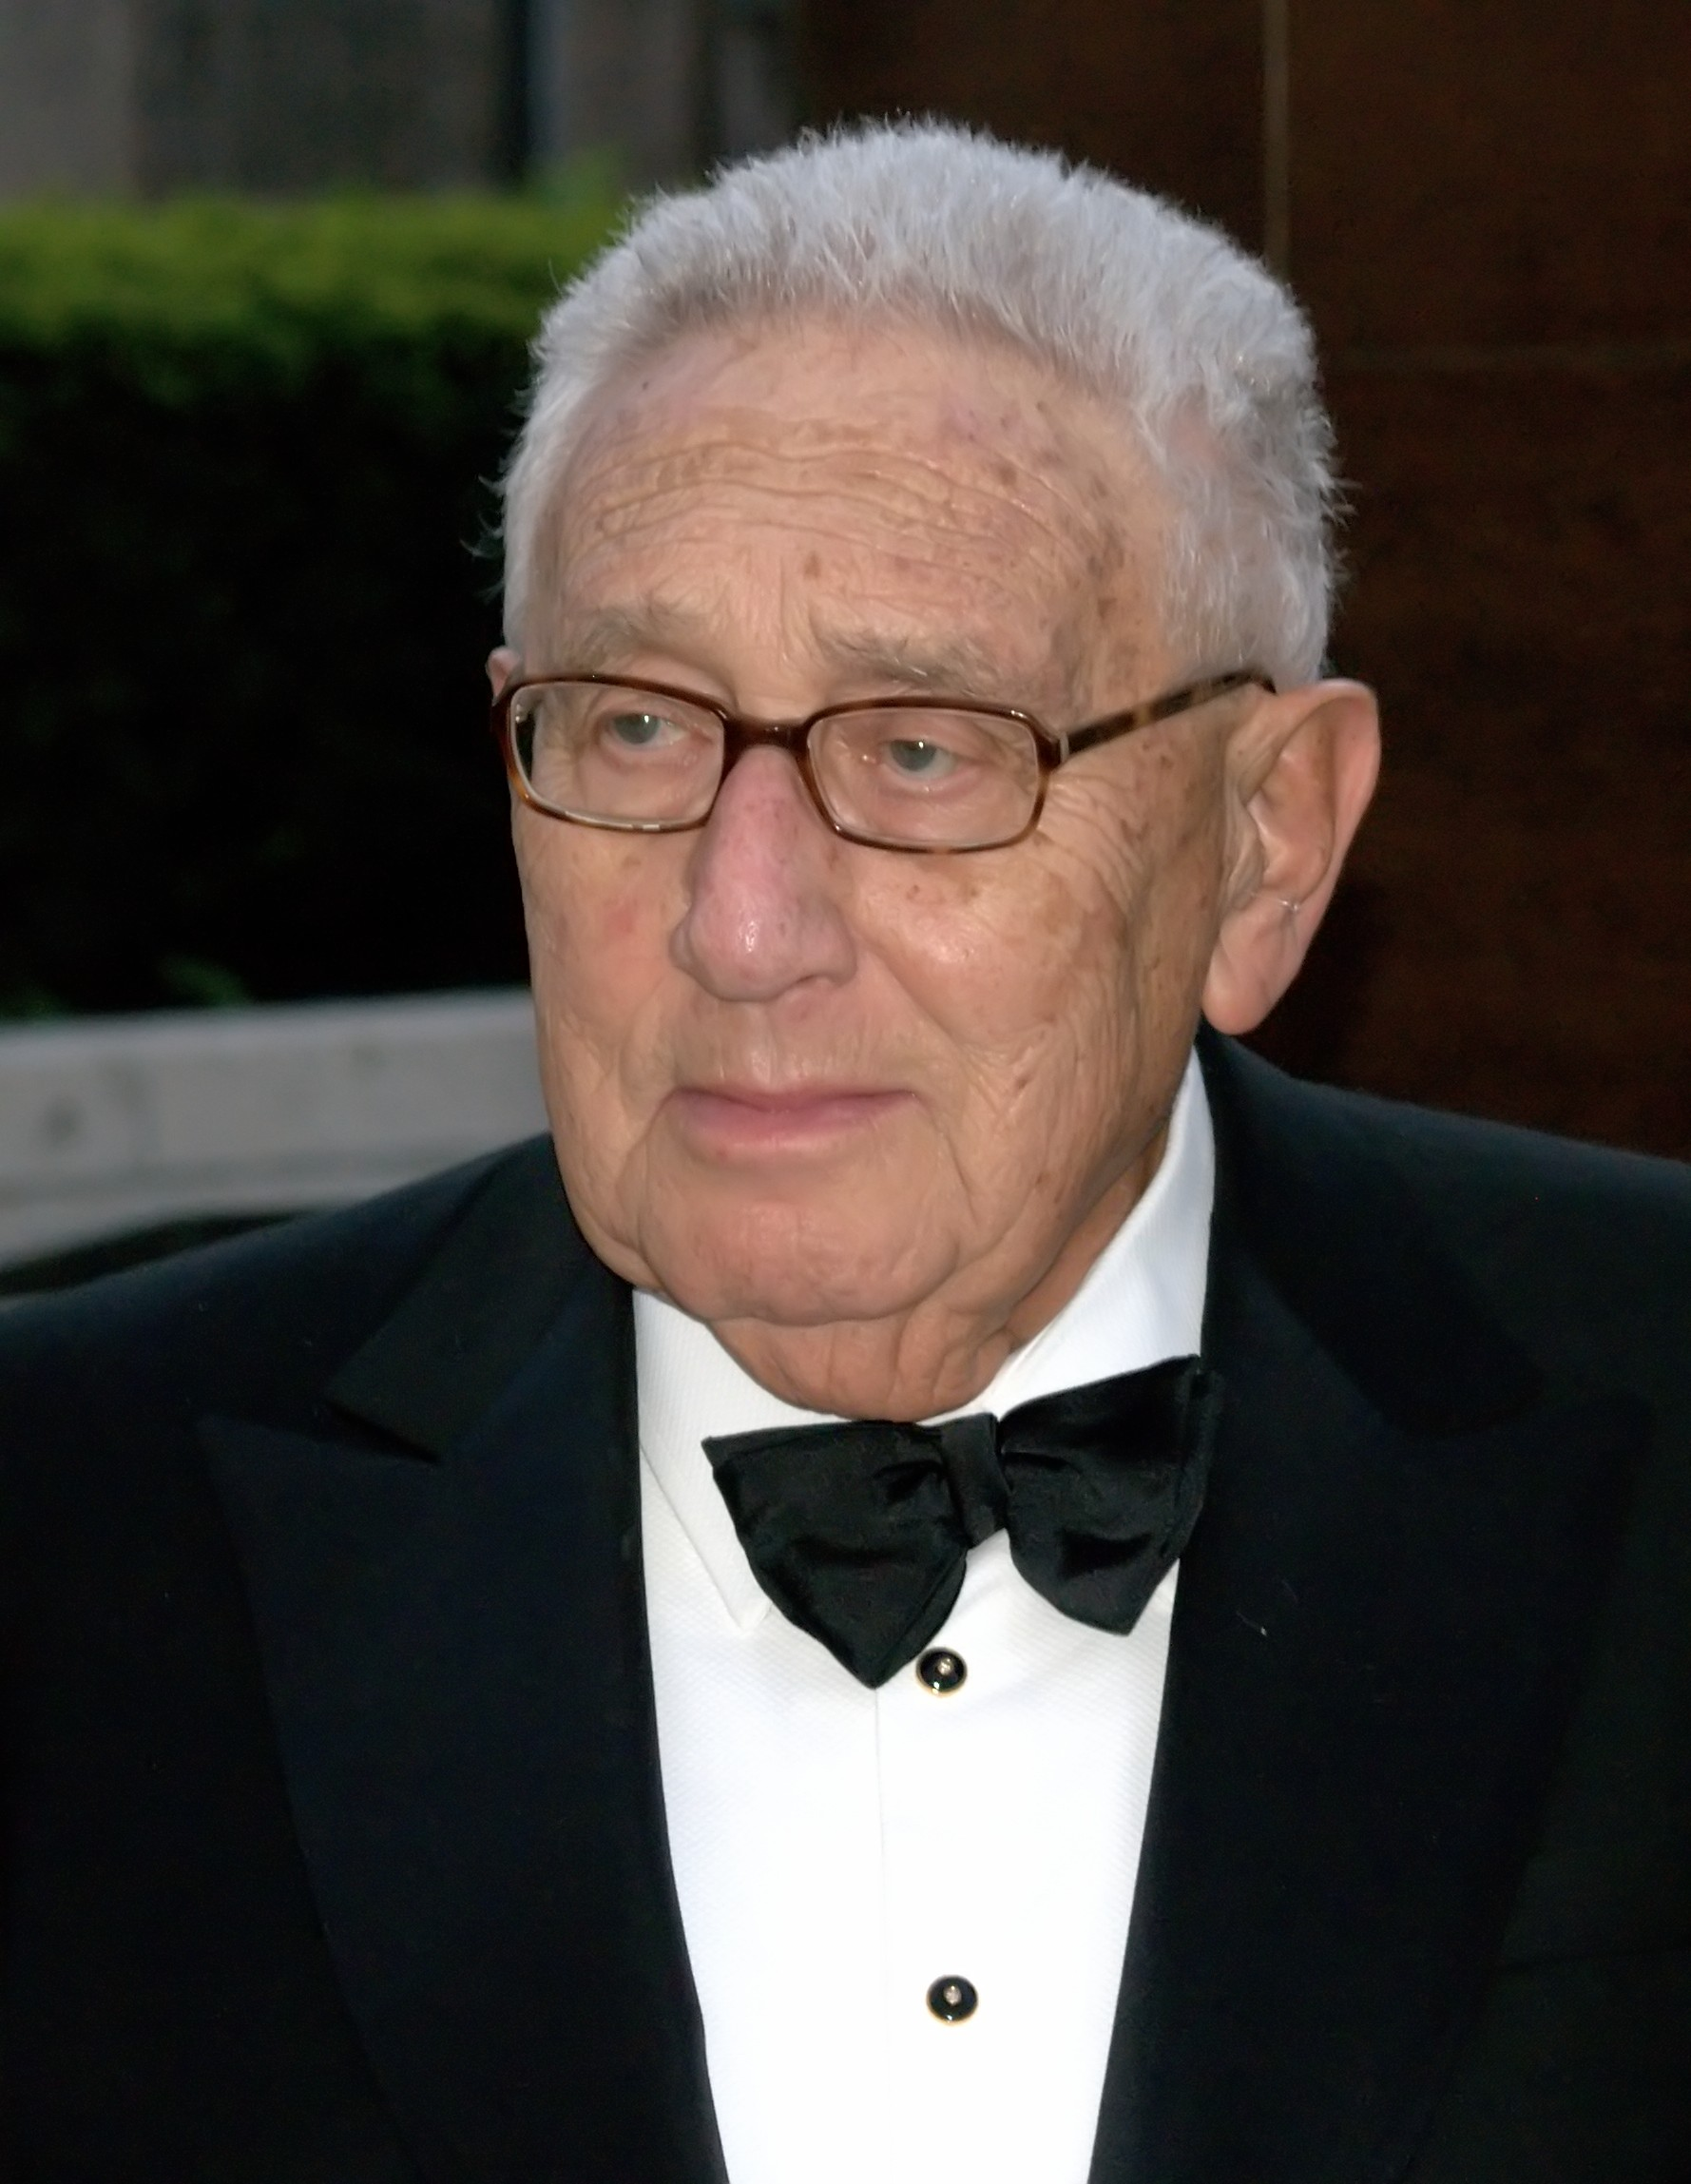 Henry KISSINGER - Wikipedia, the free encyclopedia